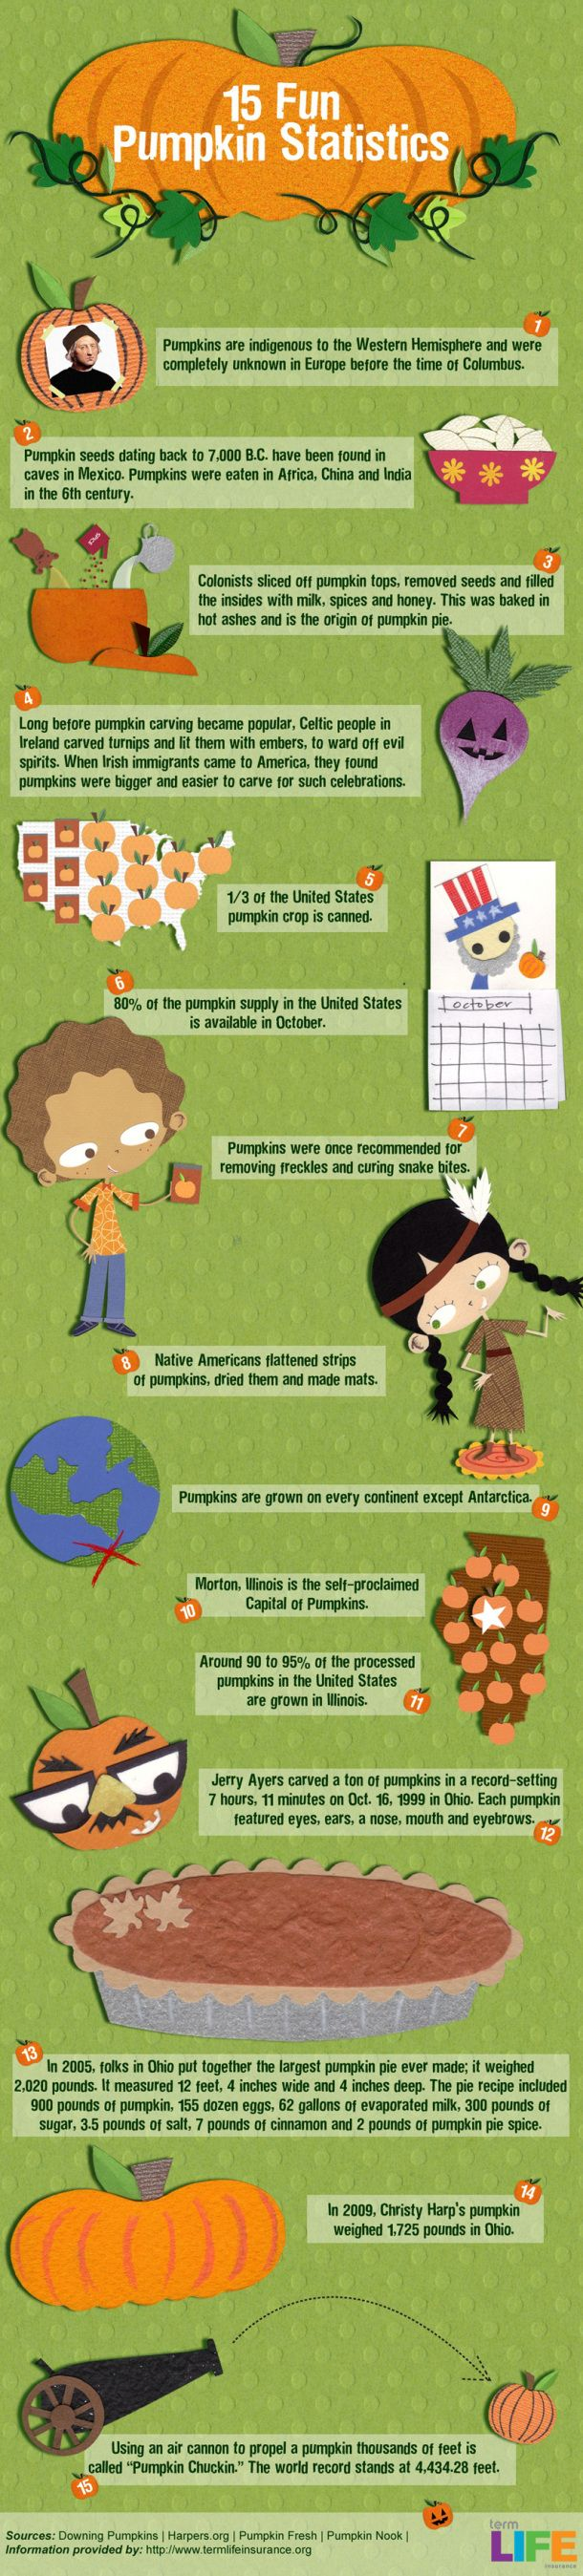 15 Pumpkin Facts